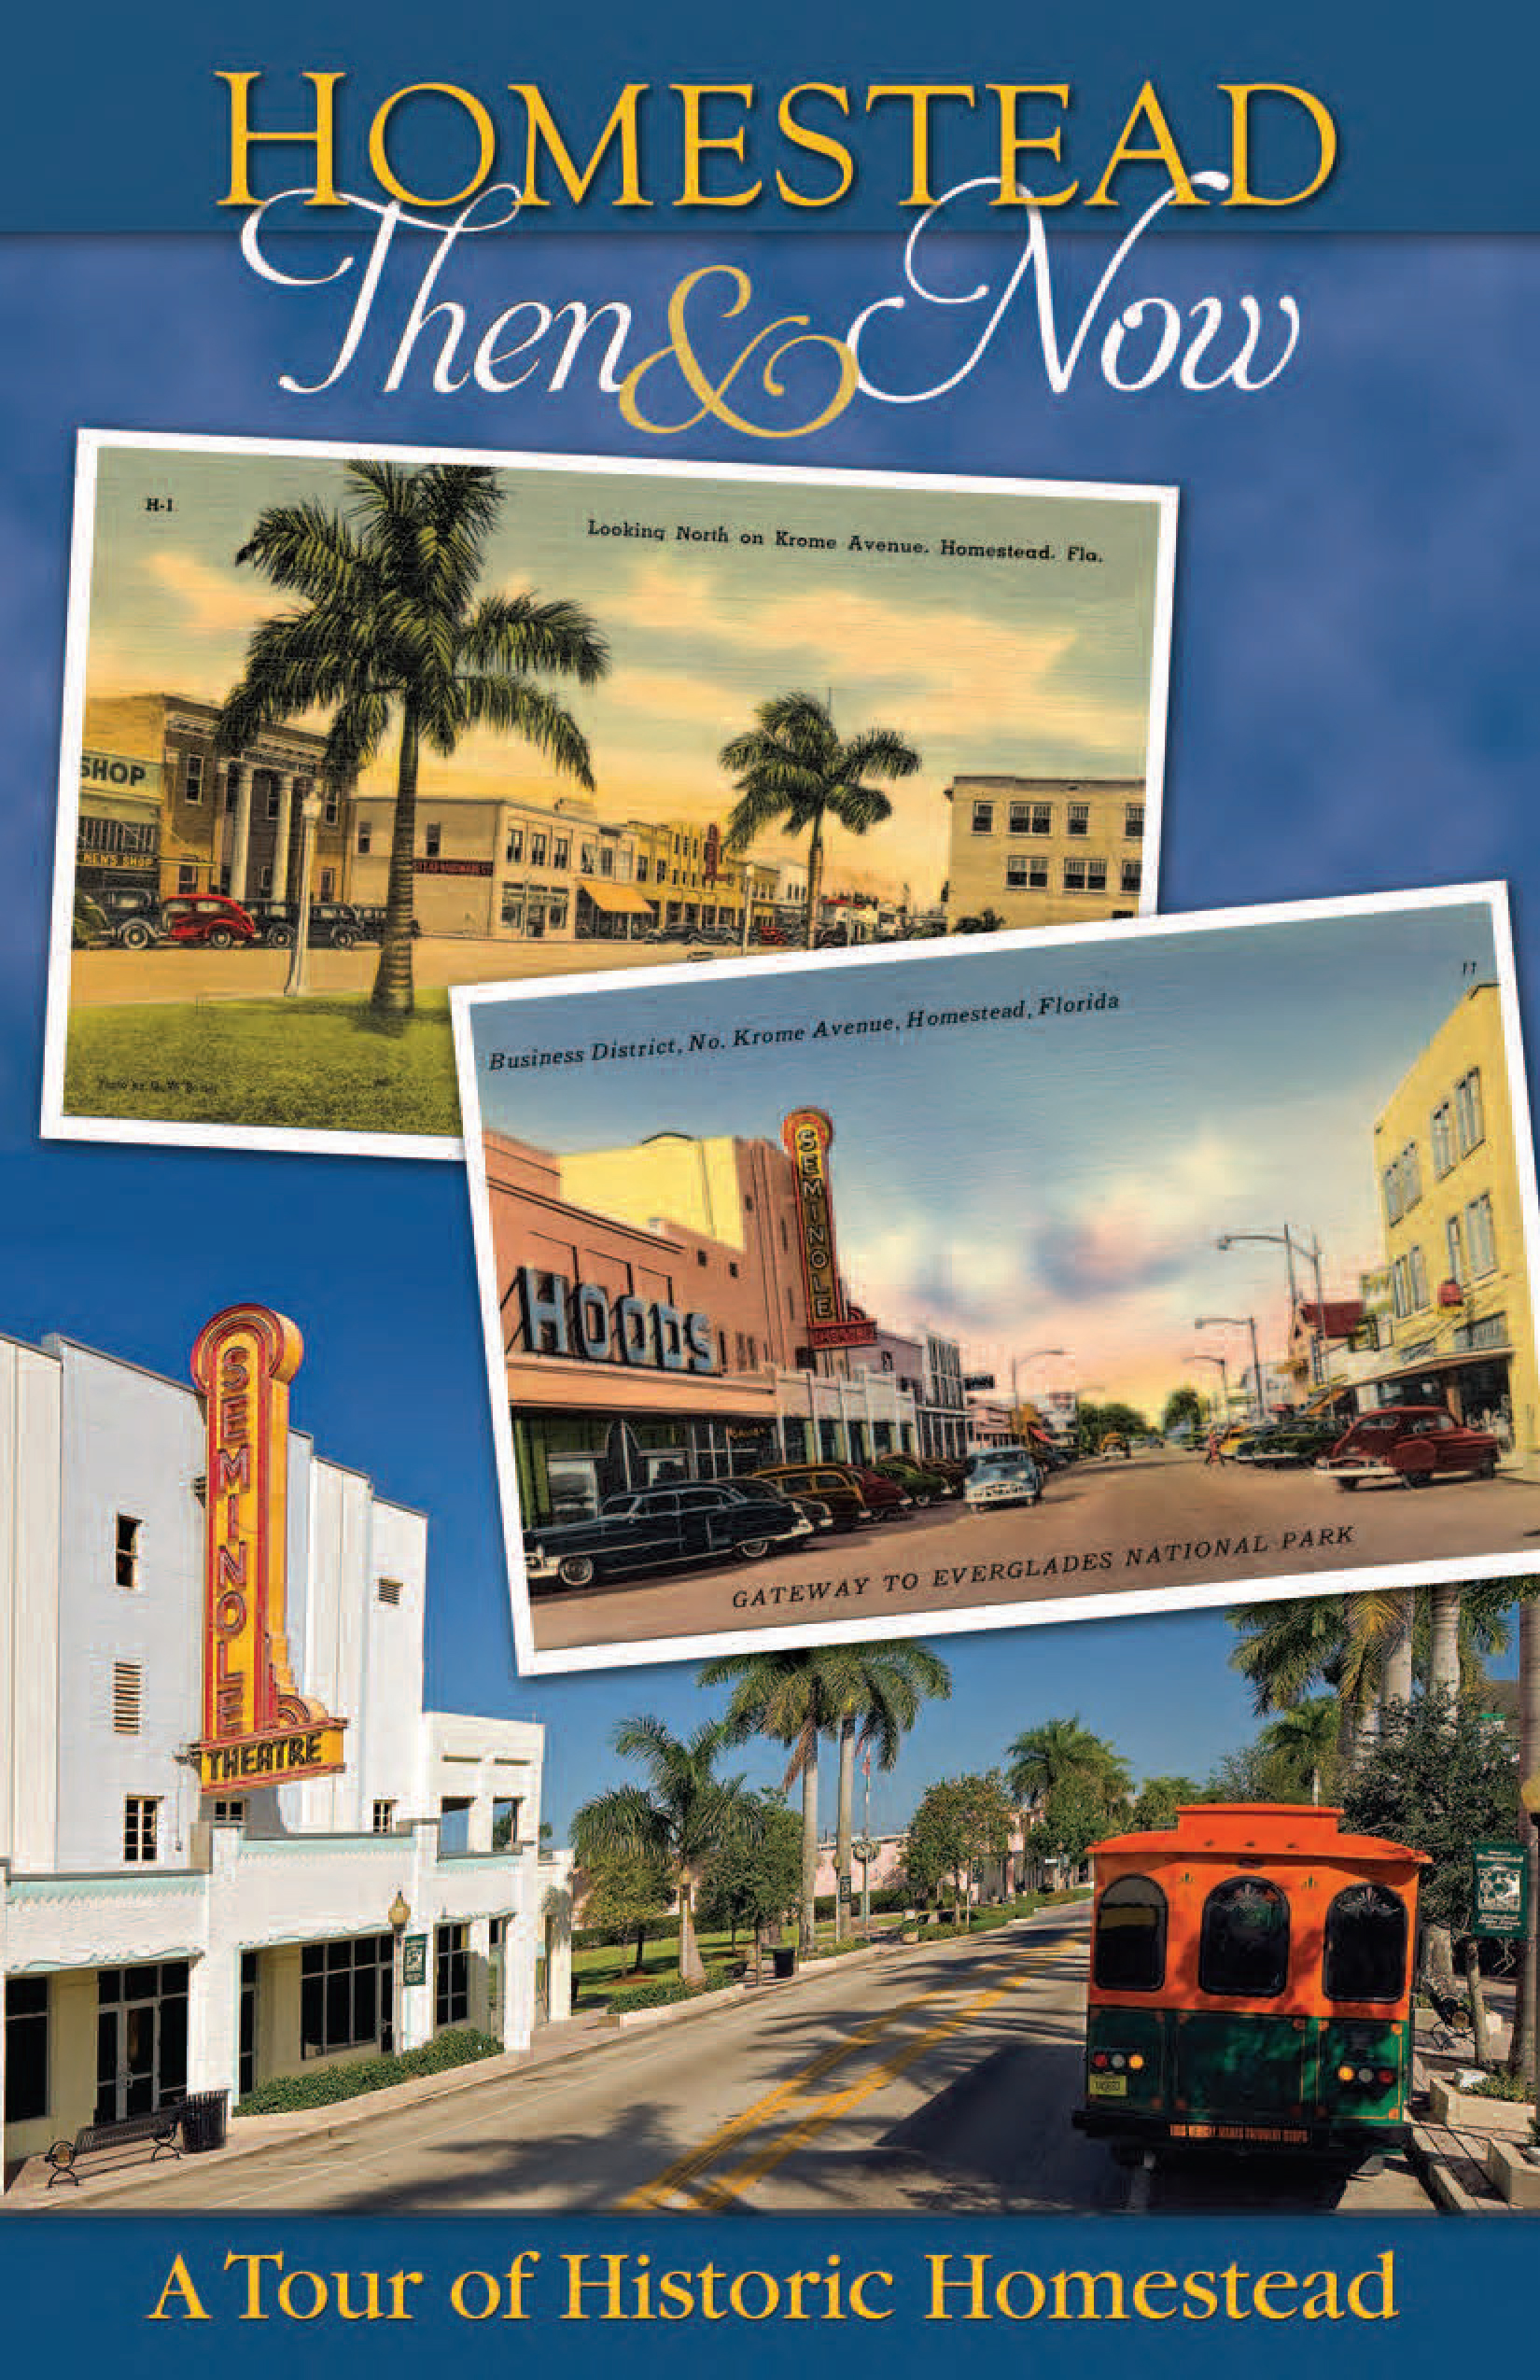 Homestead, FL - Official Website - Historic Self-Guided Tour